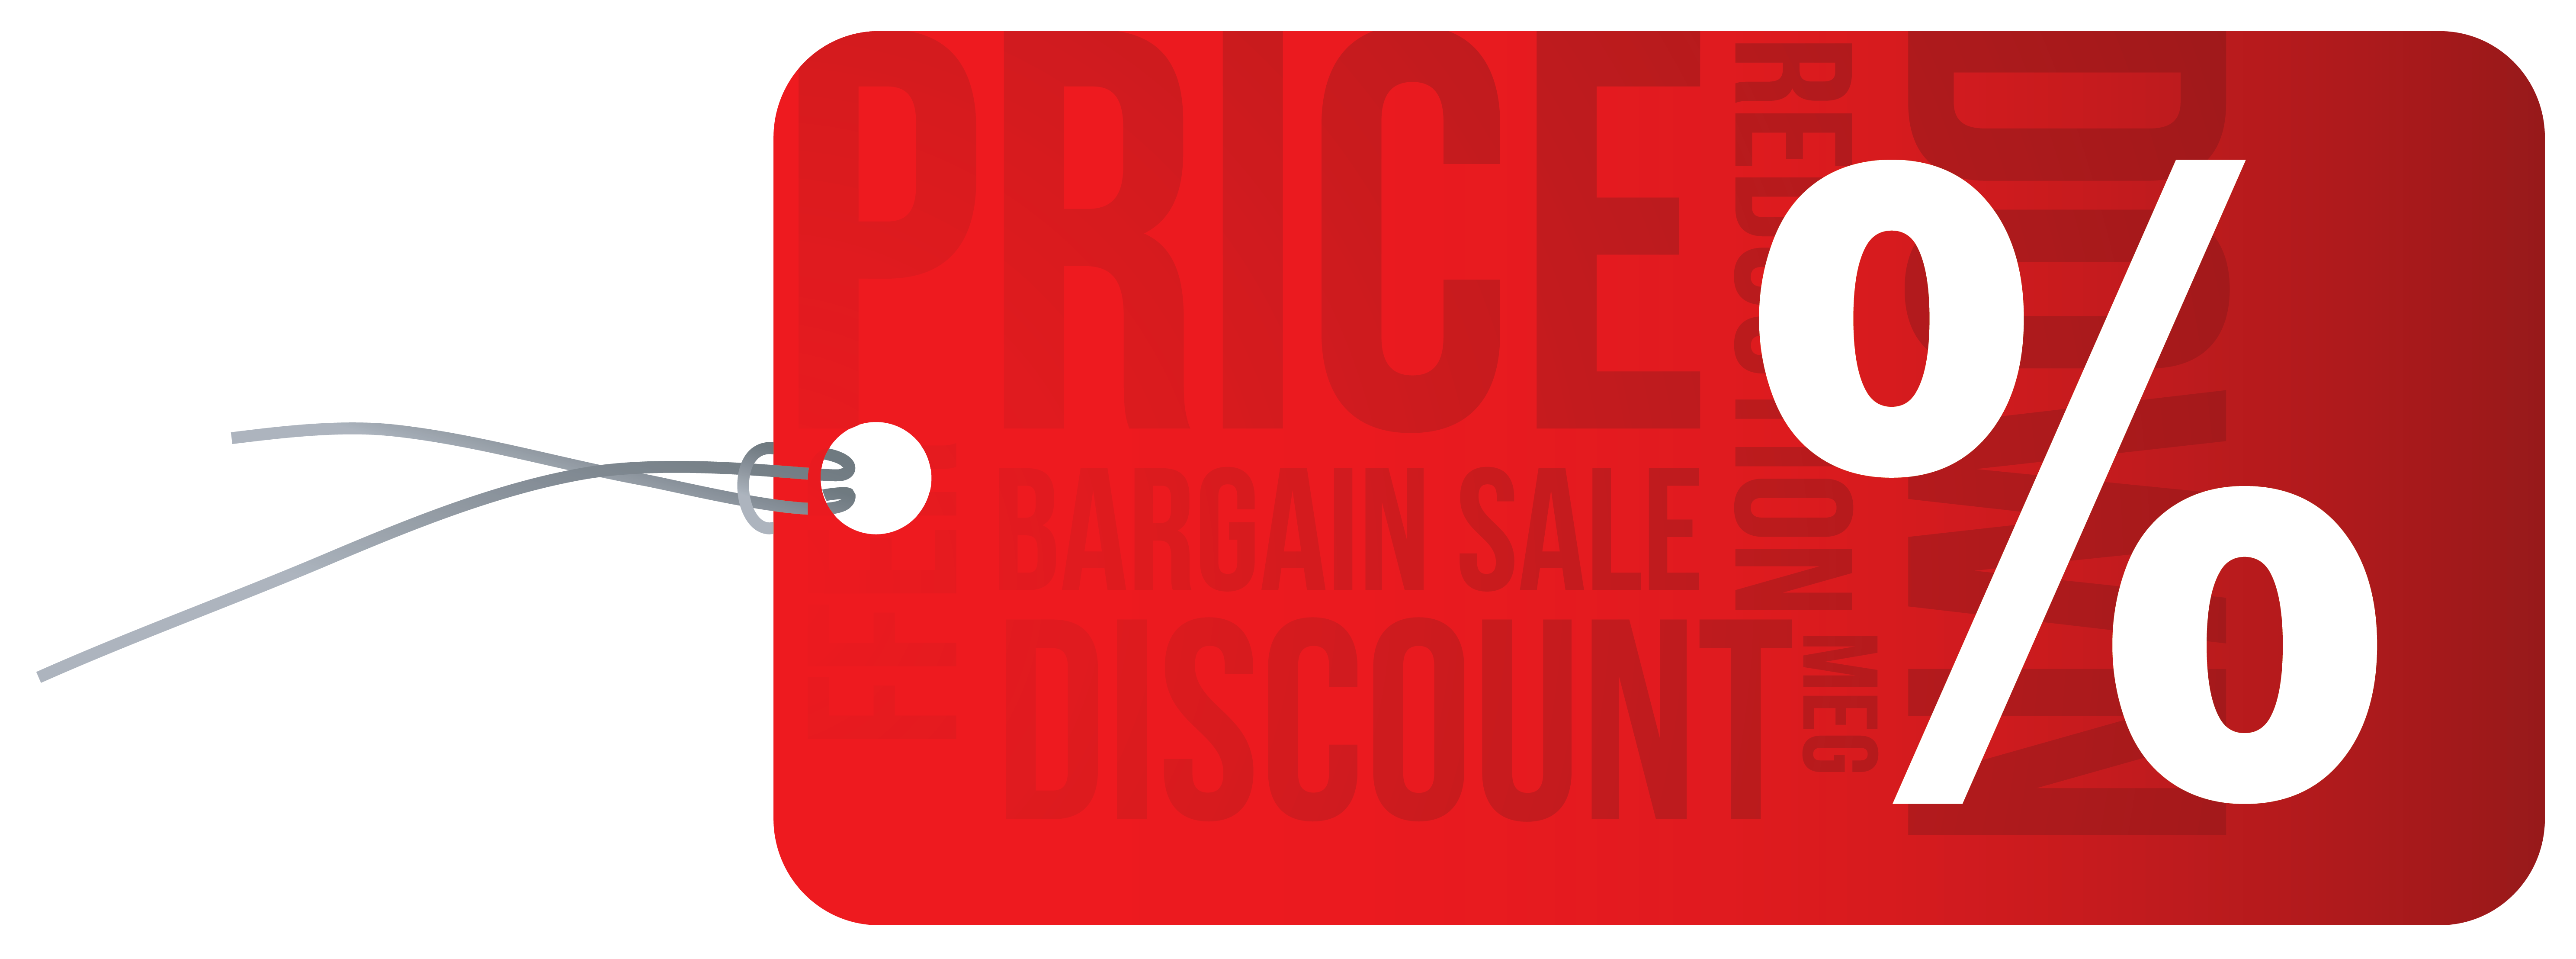 Price reduction clipart banner freeuse stock Price Reduction Label PNG Clipart Image | Gallery ... banner freeuse stock